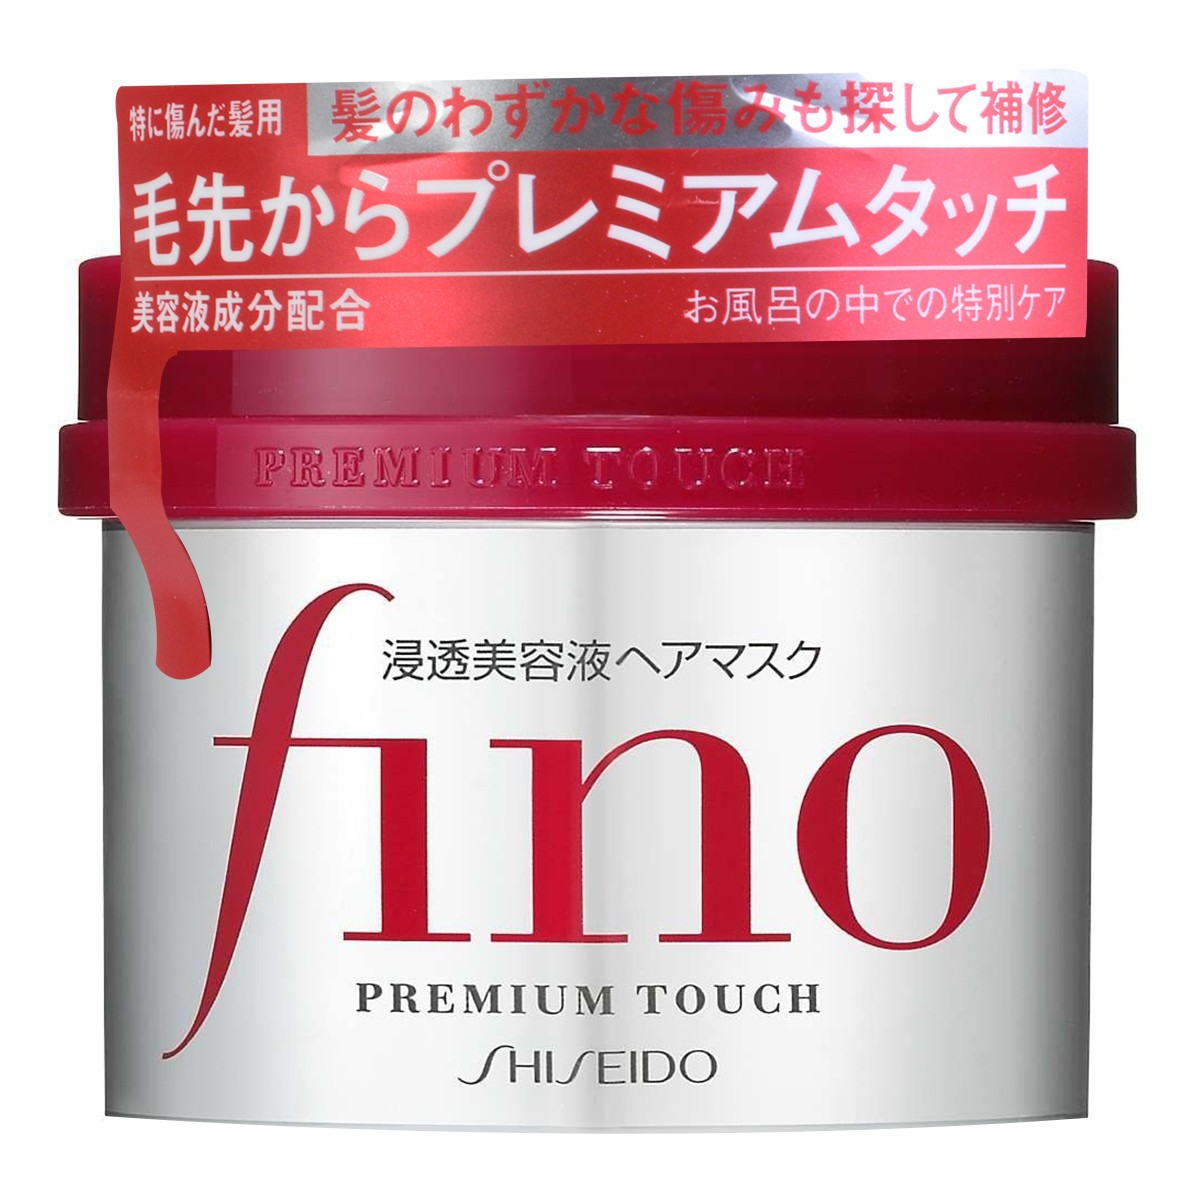 Yamibuy.com:Customer reviews:SHISEIDO FINO Premium Touch Hair Mask 230g @Cosme Award No.1